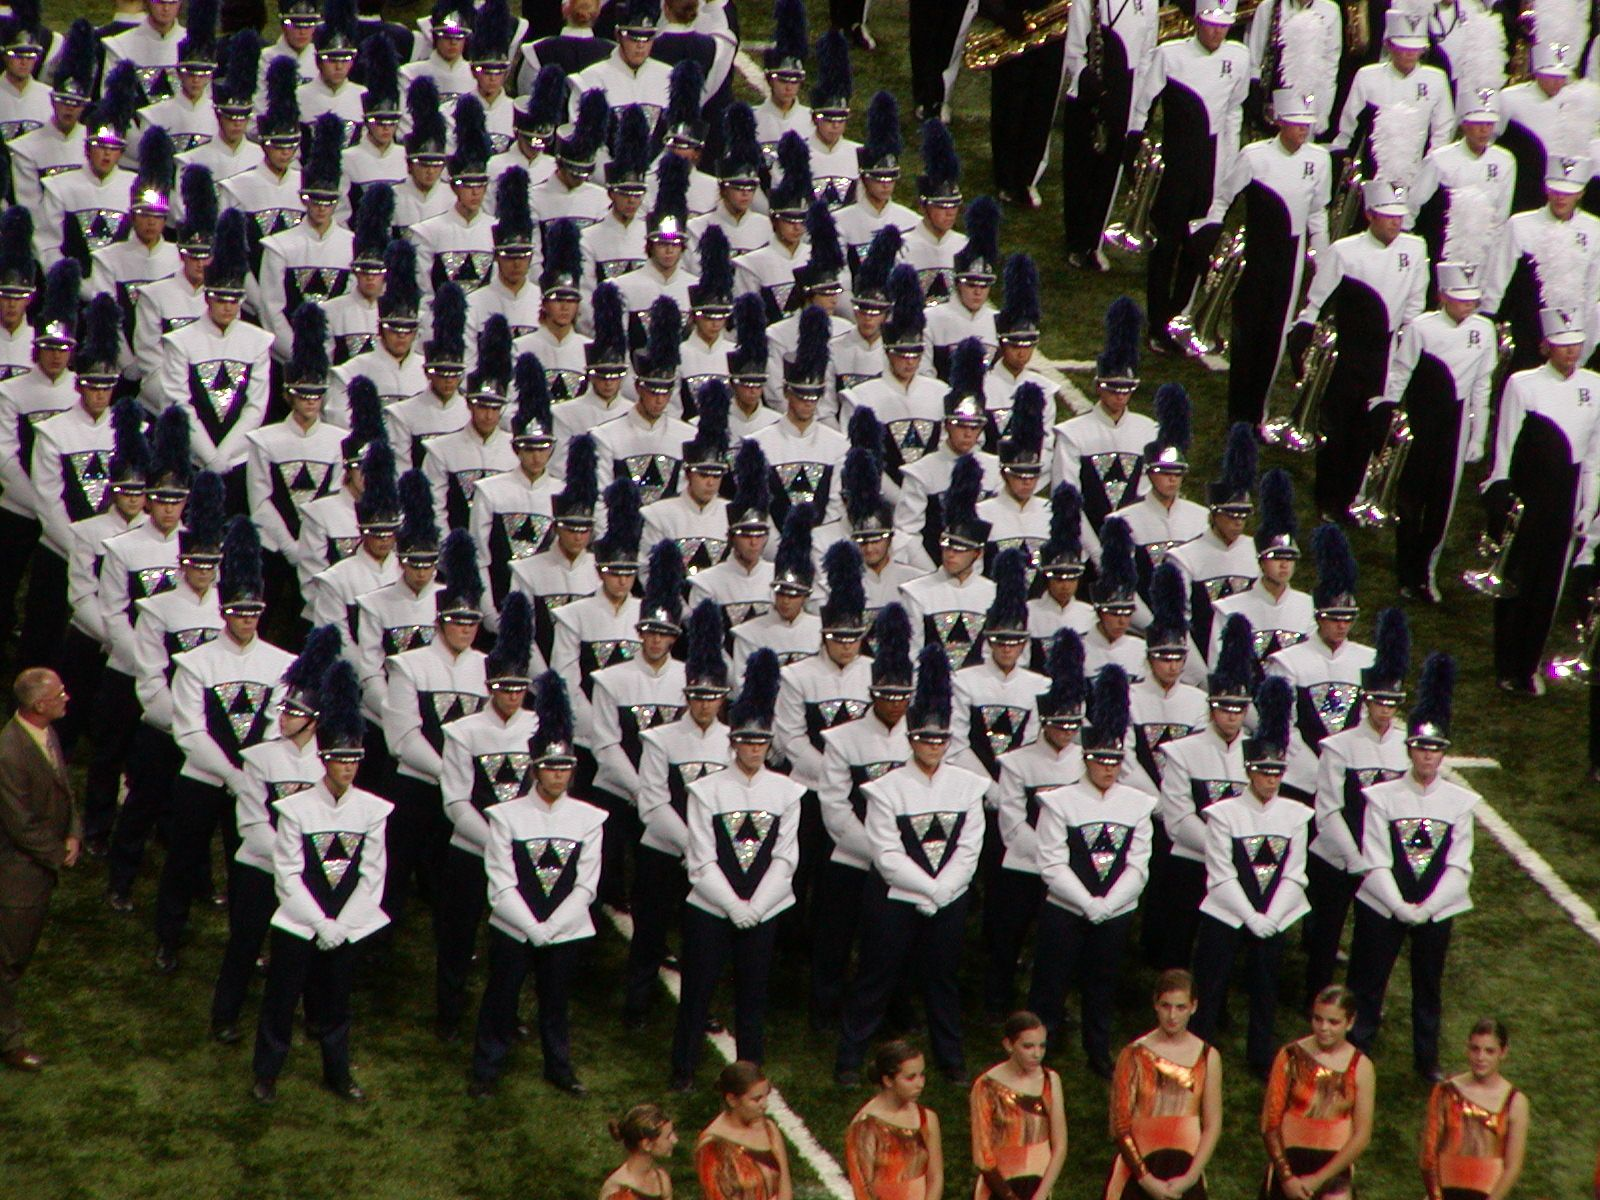 1600x1200 30 Pictures In High Quality - Marching Band by Meagan Cuffley